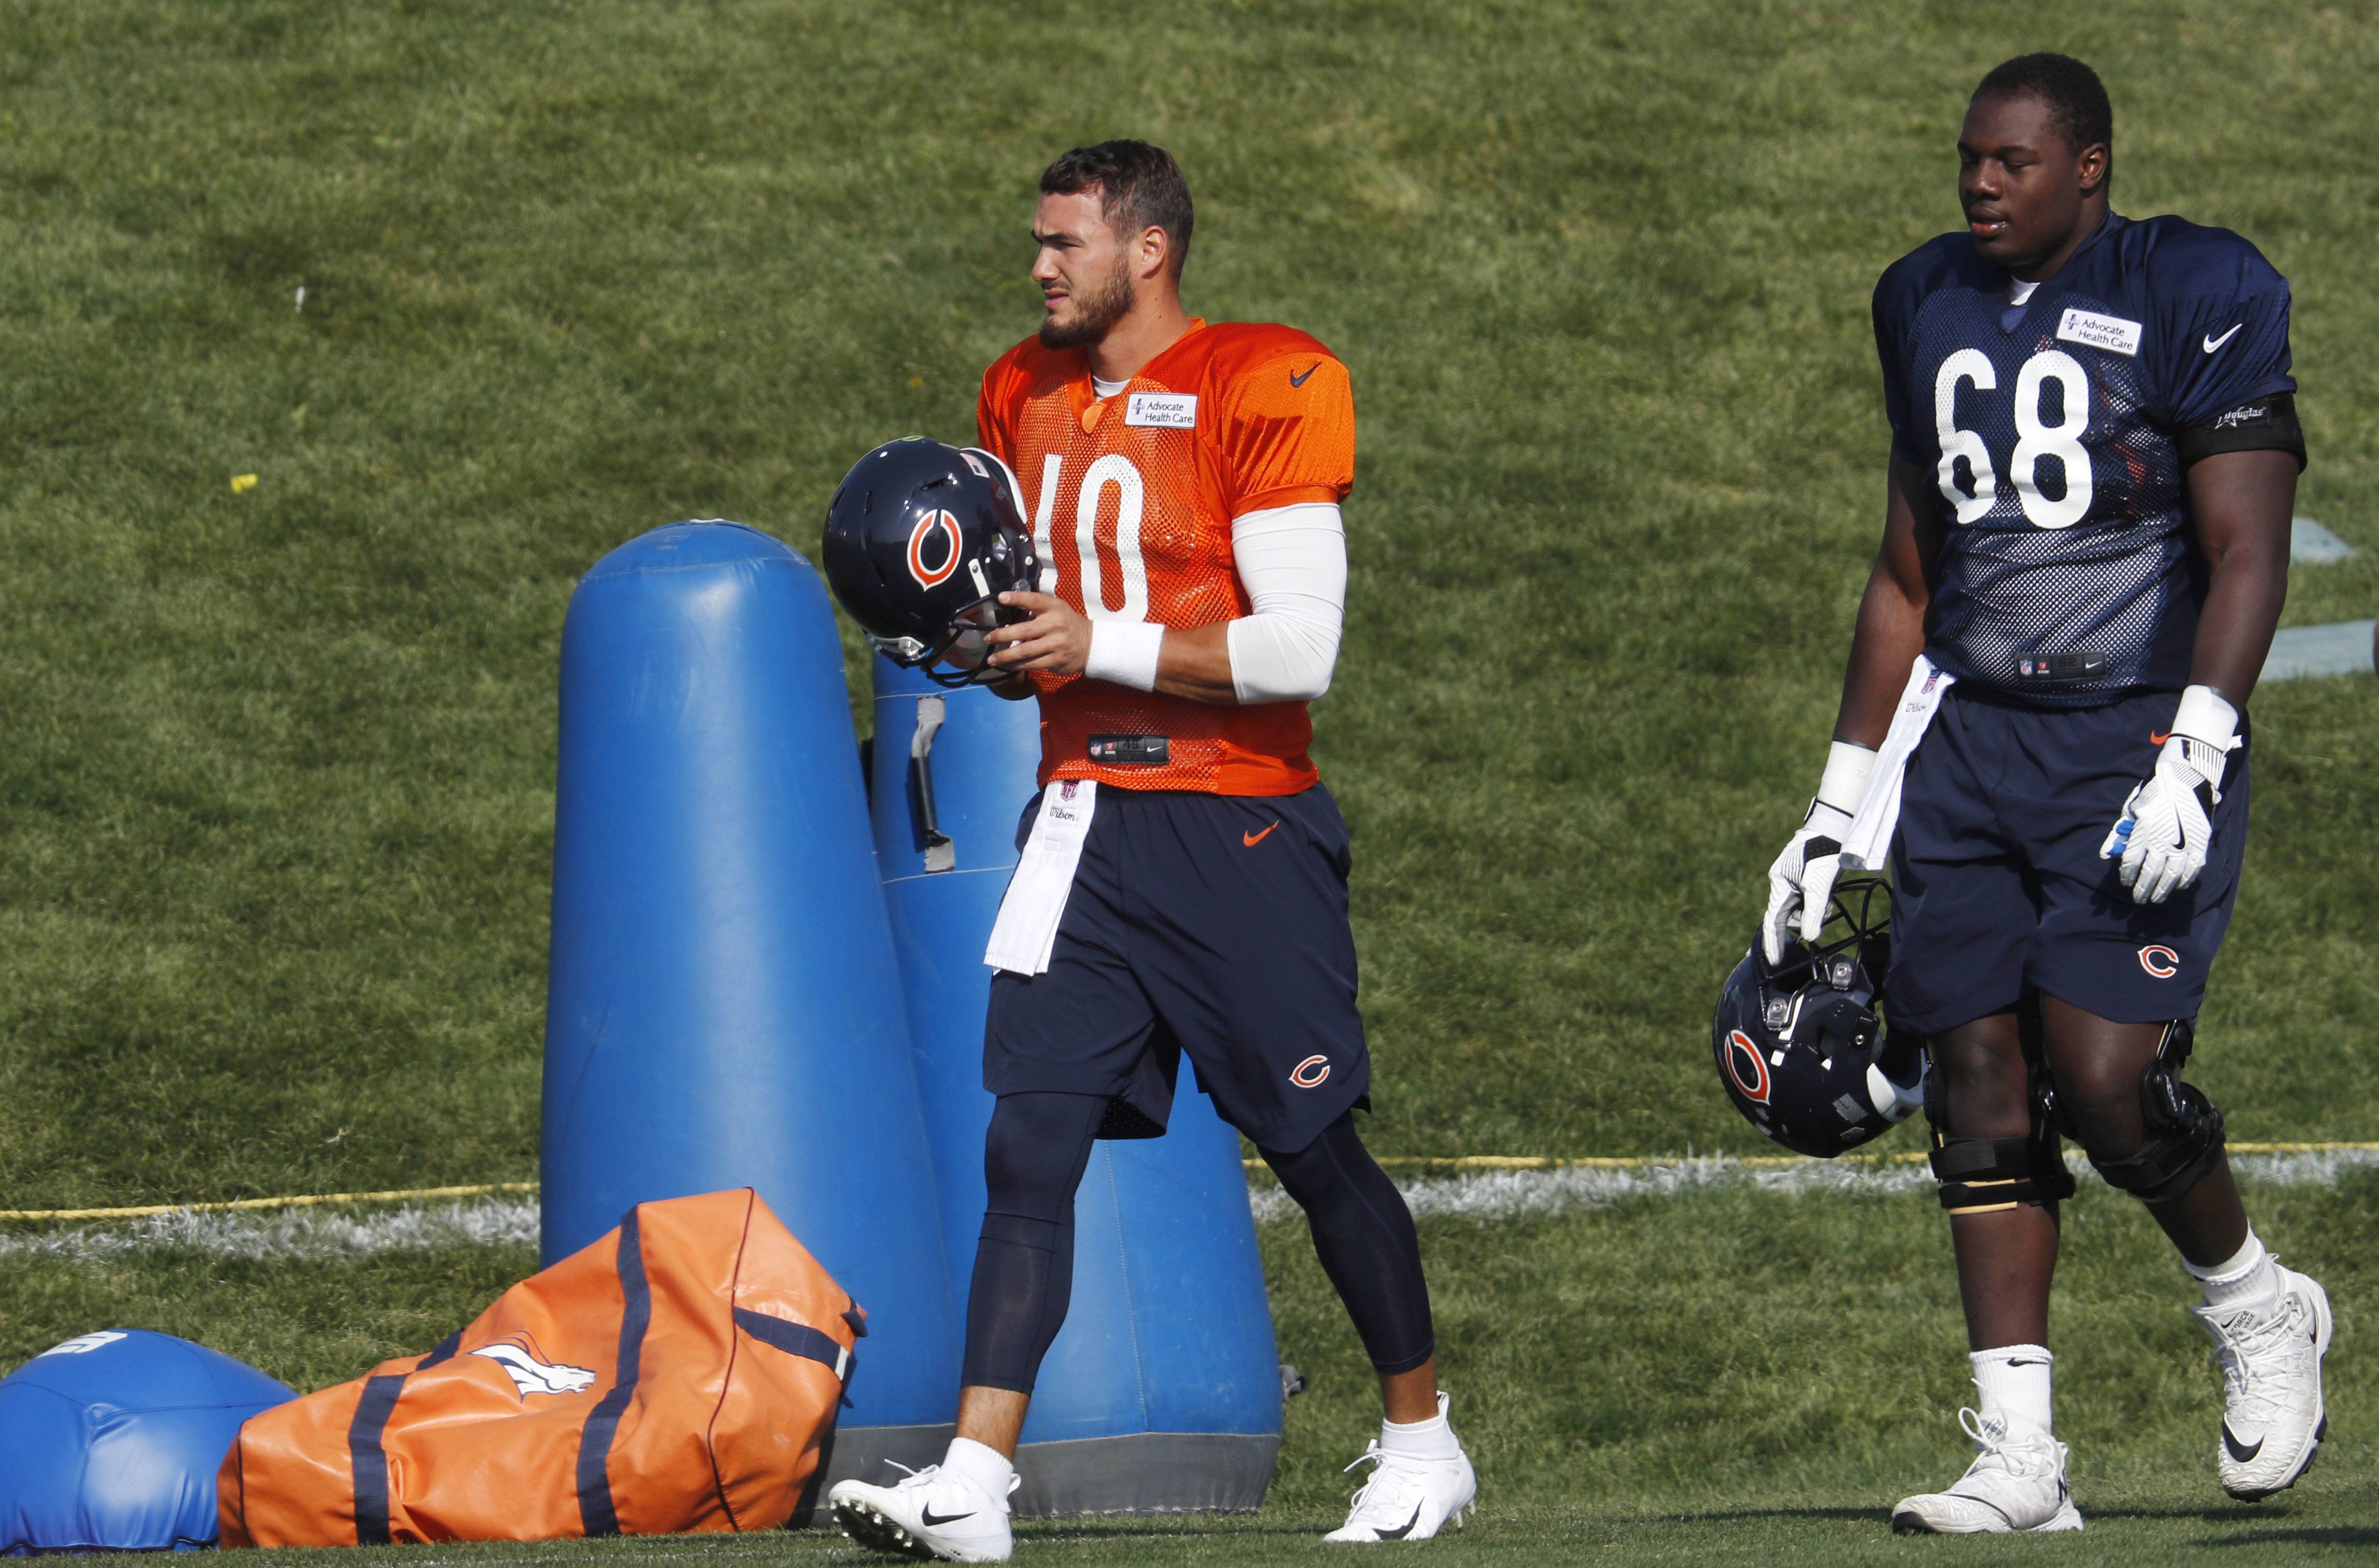 Chicago Bears quarterback Mitchell Trubisky, left, and center James Daniels head to drills during a joint NFL football training camp session with the Denver Broncos, Thursday, Aug. 16, 2018, in Englewood, Colo. (AP Photo/David Zalubowski)